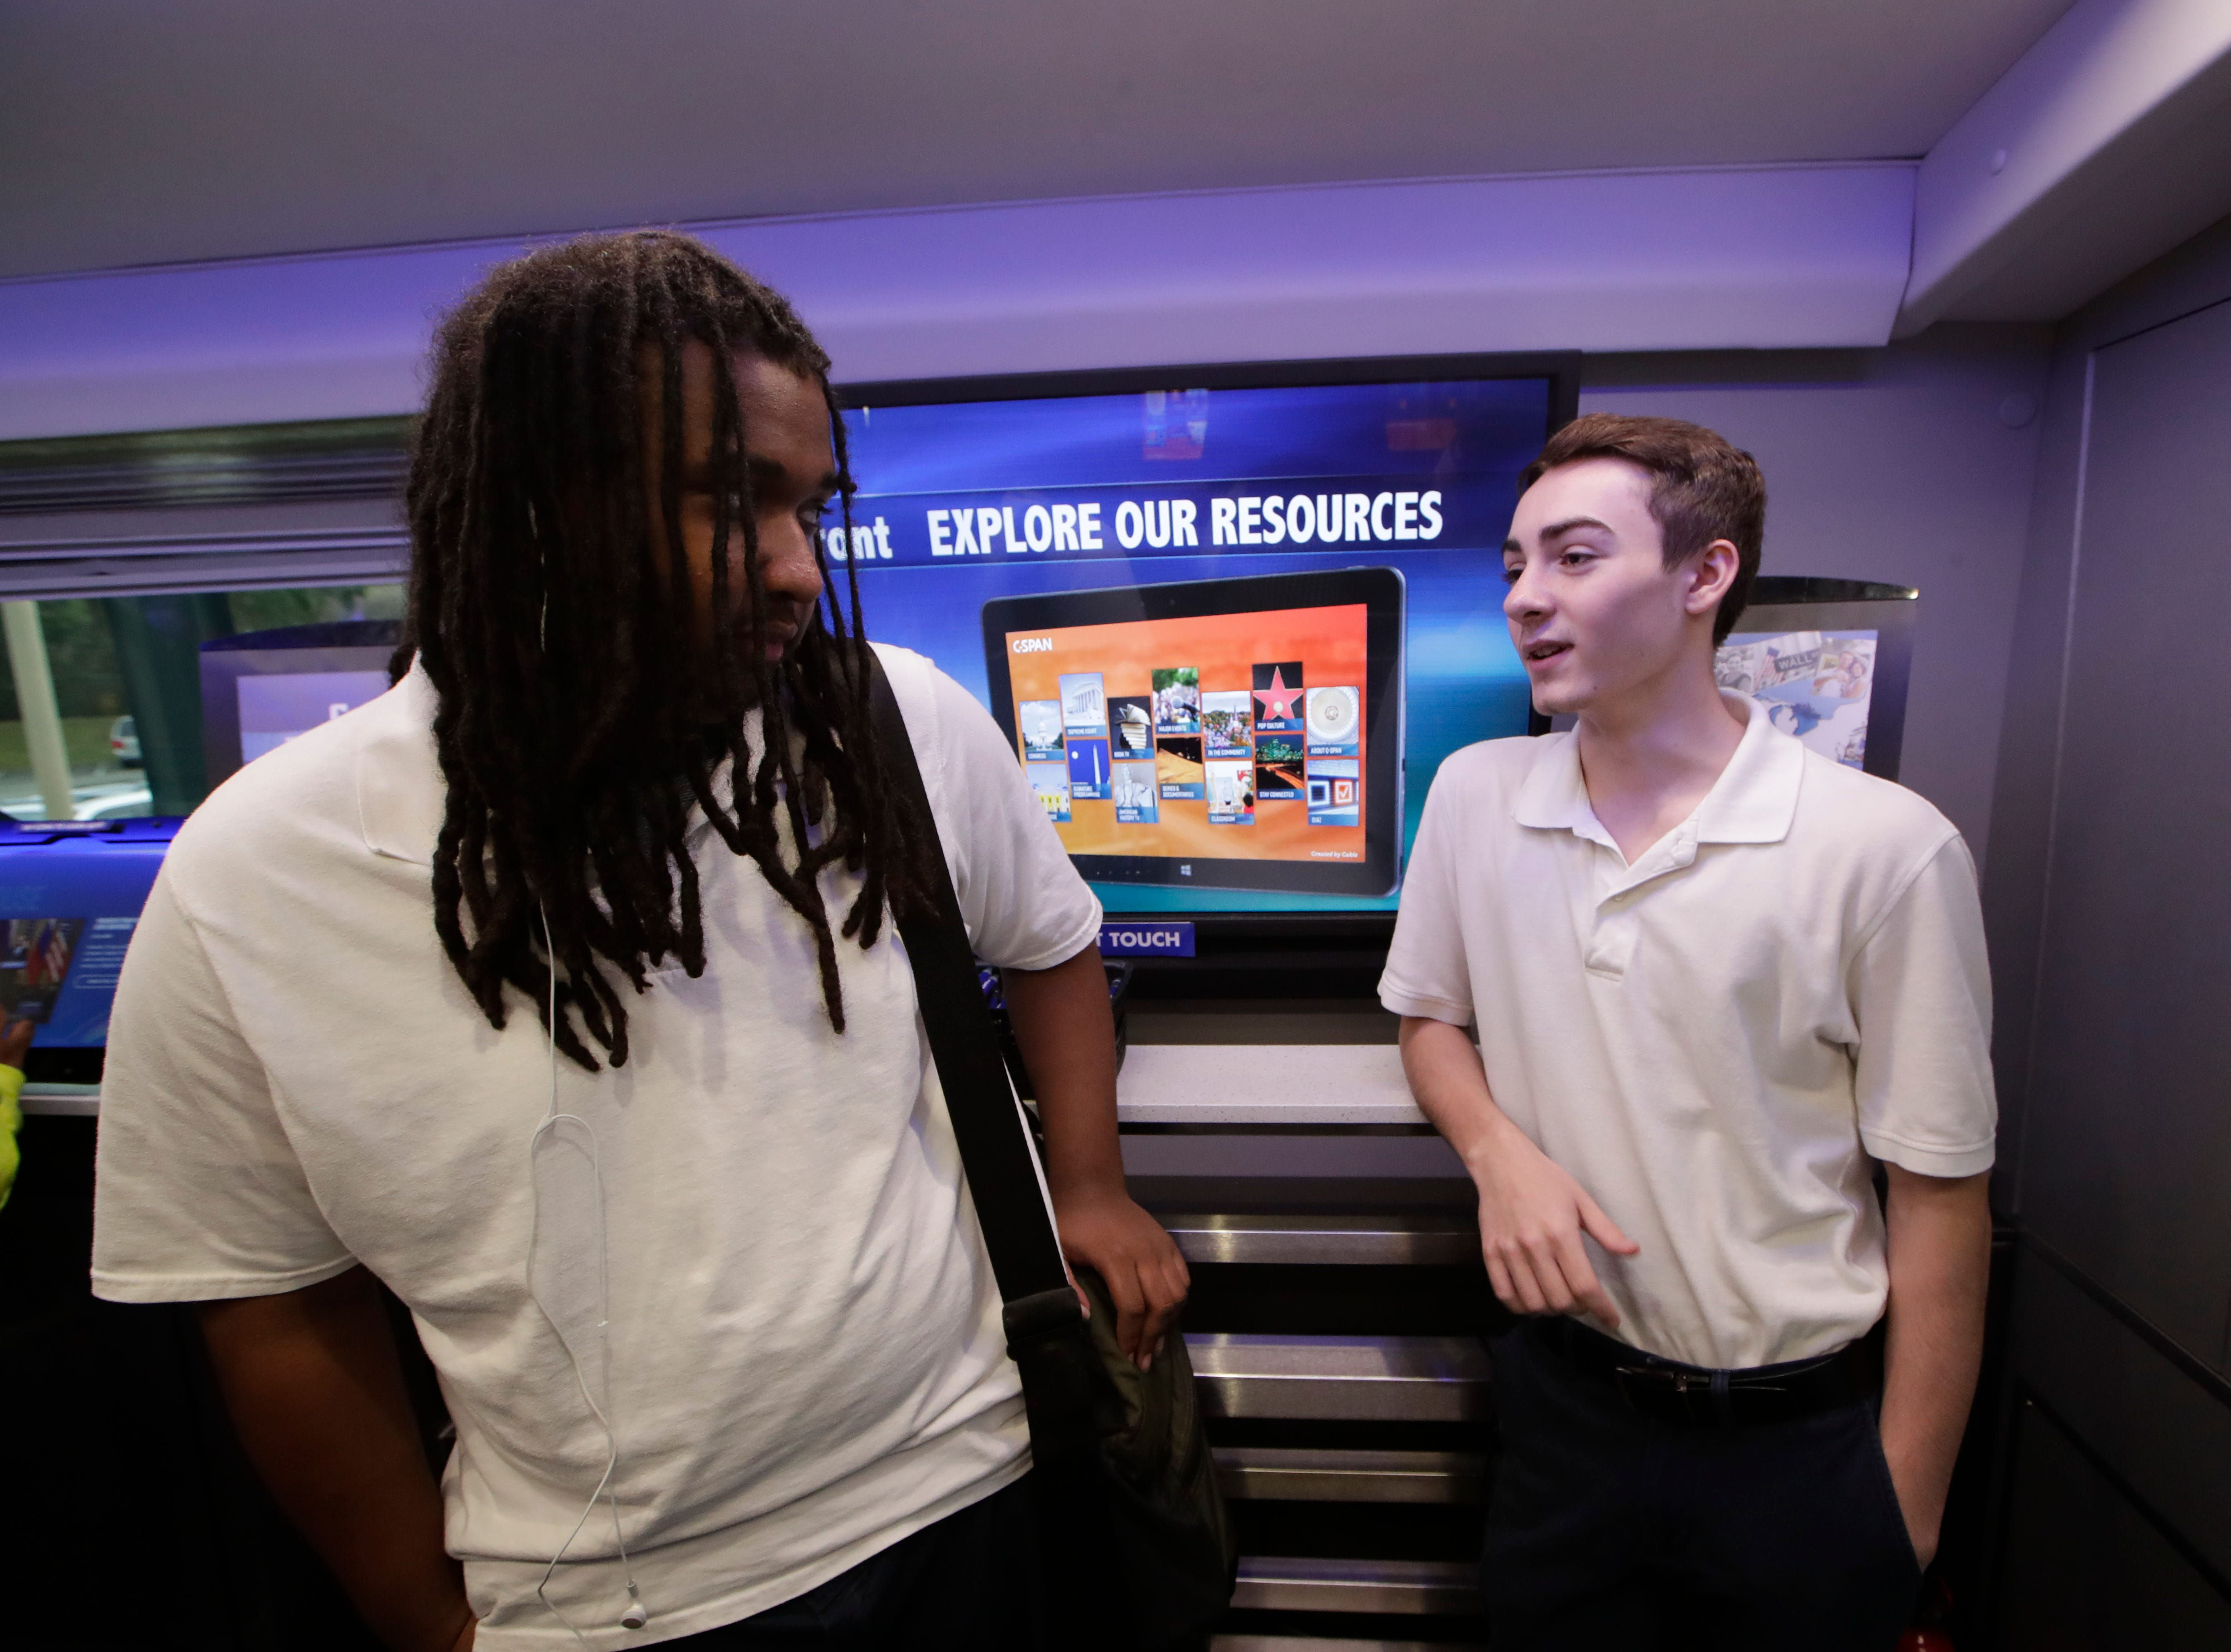 Johnathan Ferrell, 17, left and Jordan Johnson, 17, talk about what they learned on the C-SPAN bus as it makes a stop at the Ghazvini Learning Center in Tallahassee, allowing Success Academy and Second Chance students to come aboard the bus and learn about C-SPAN Monday, Dec. 3, 2018.